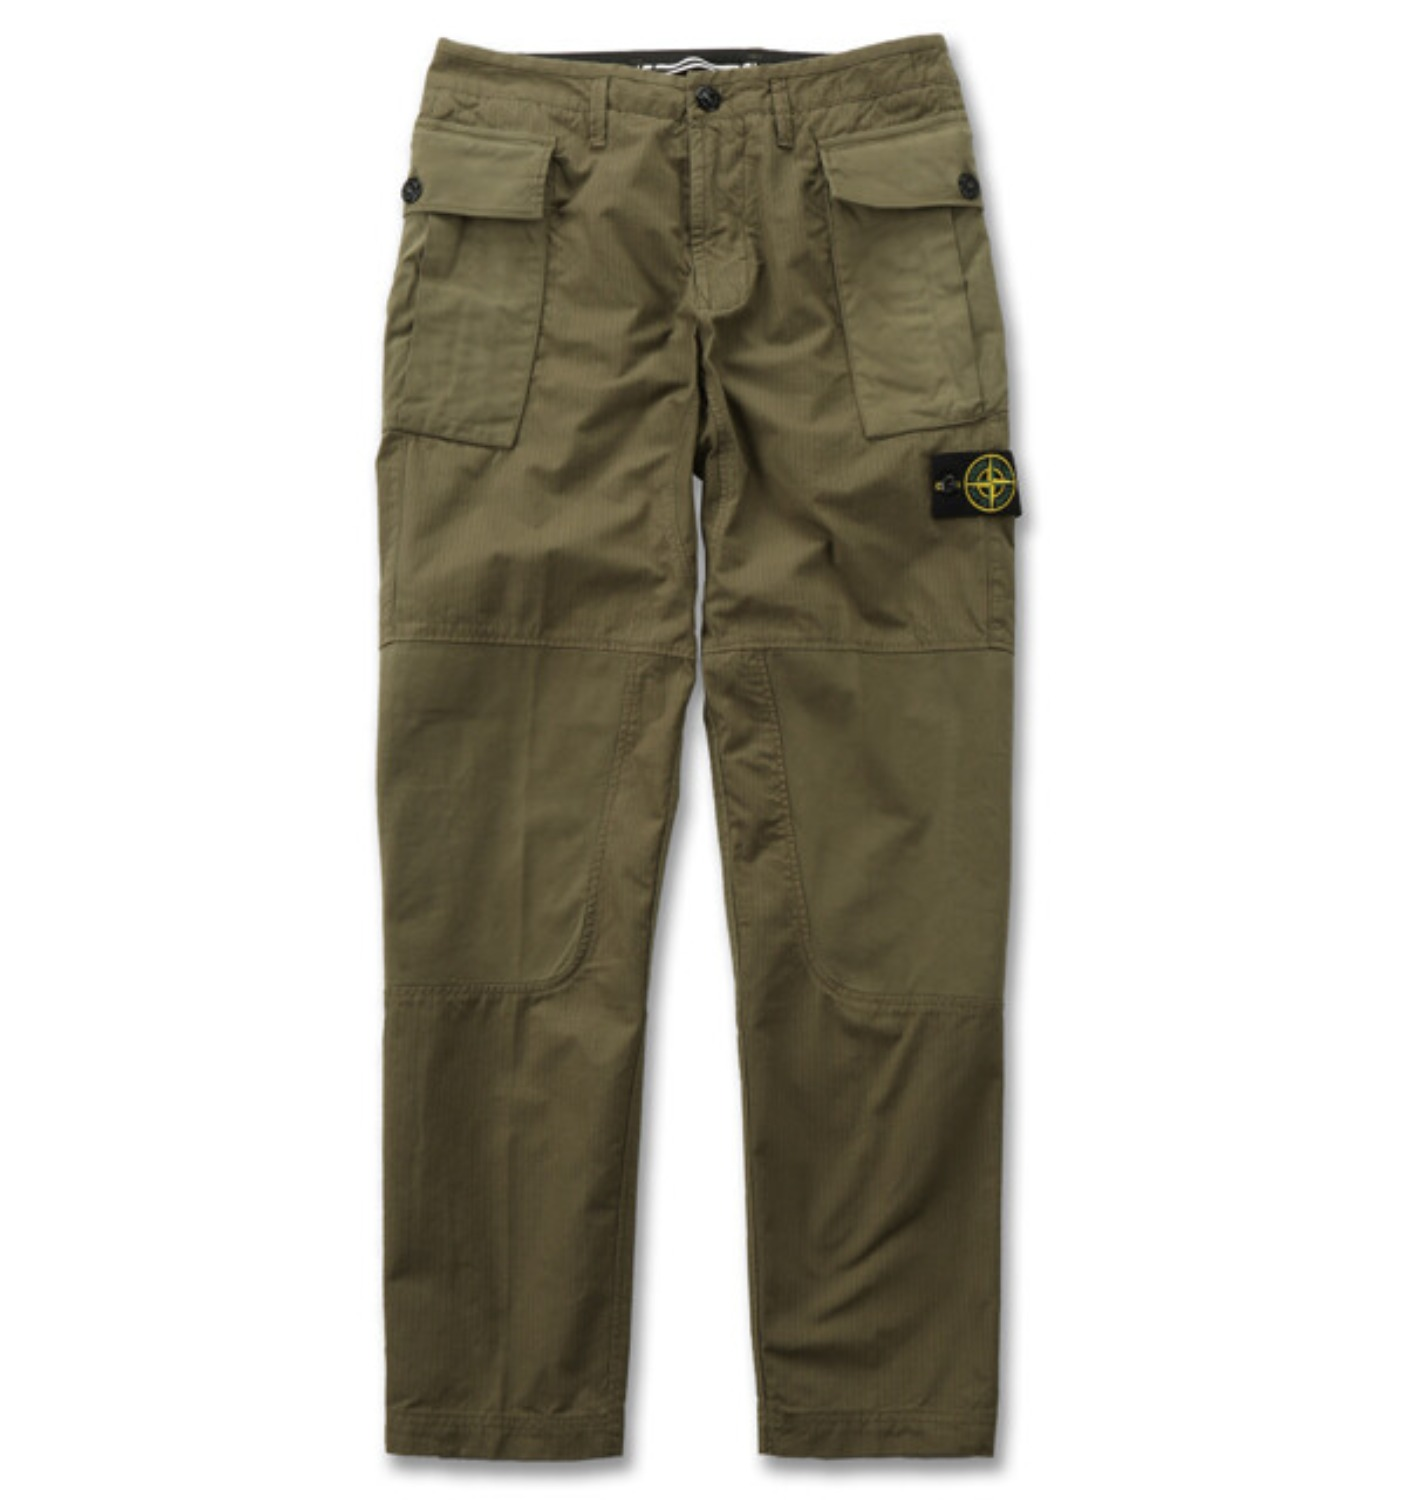 GAUZED COTTON RIP STOP GARMENT DYED PANTS OLIVE